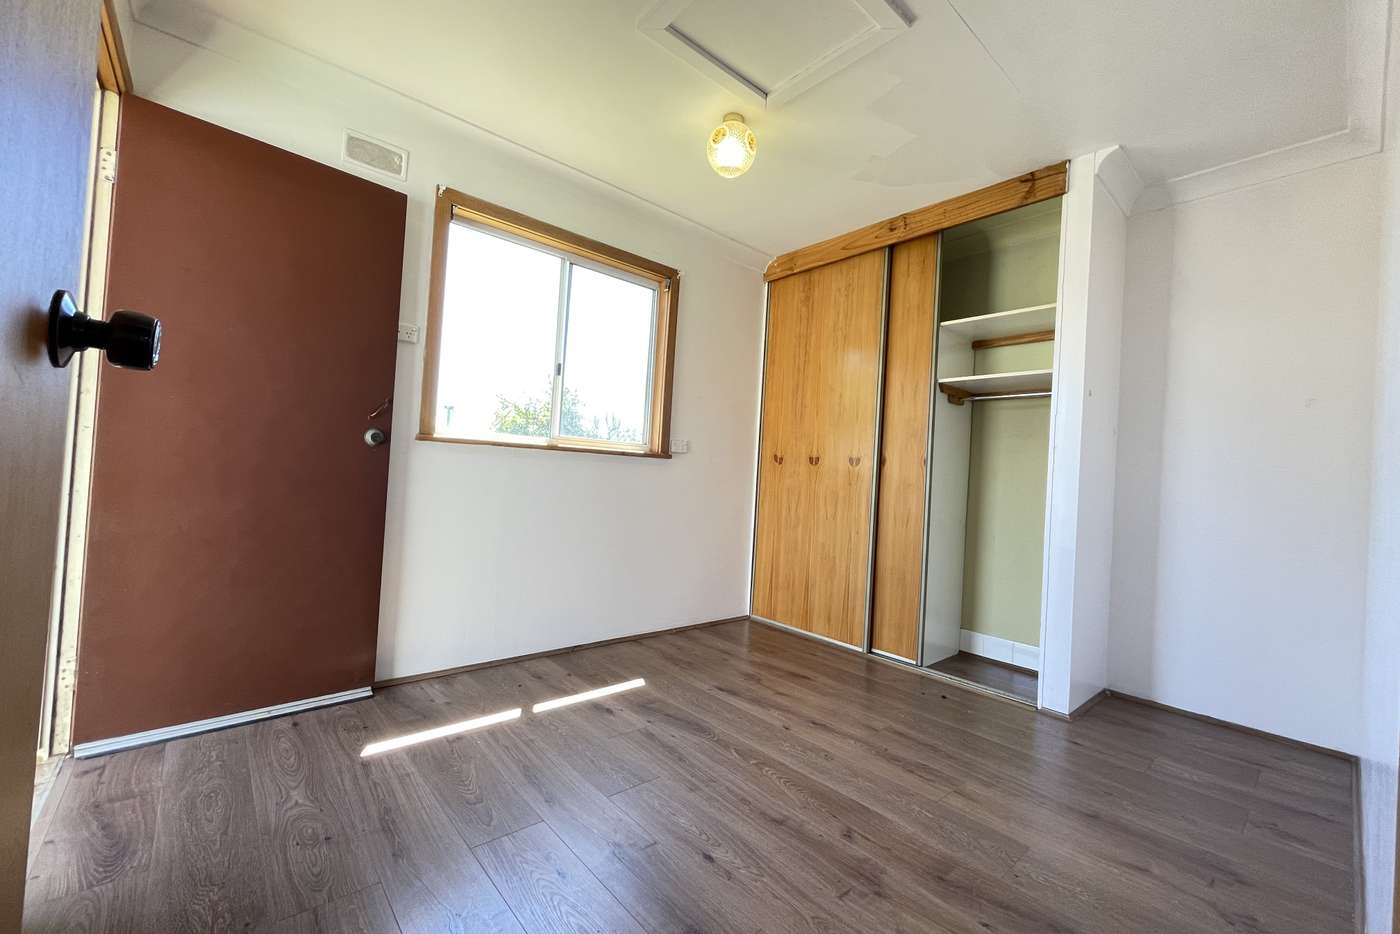 Sixth view of Homely house listing, 39a Percy Street, Marayong NSW 2148